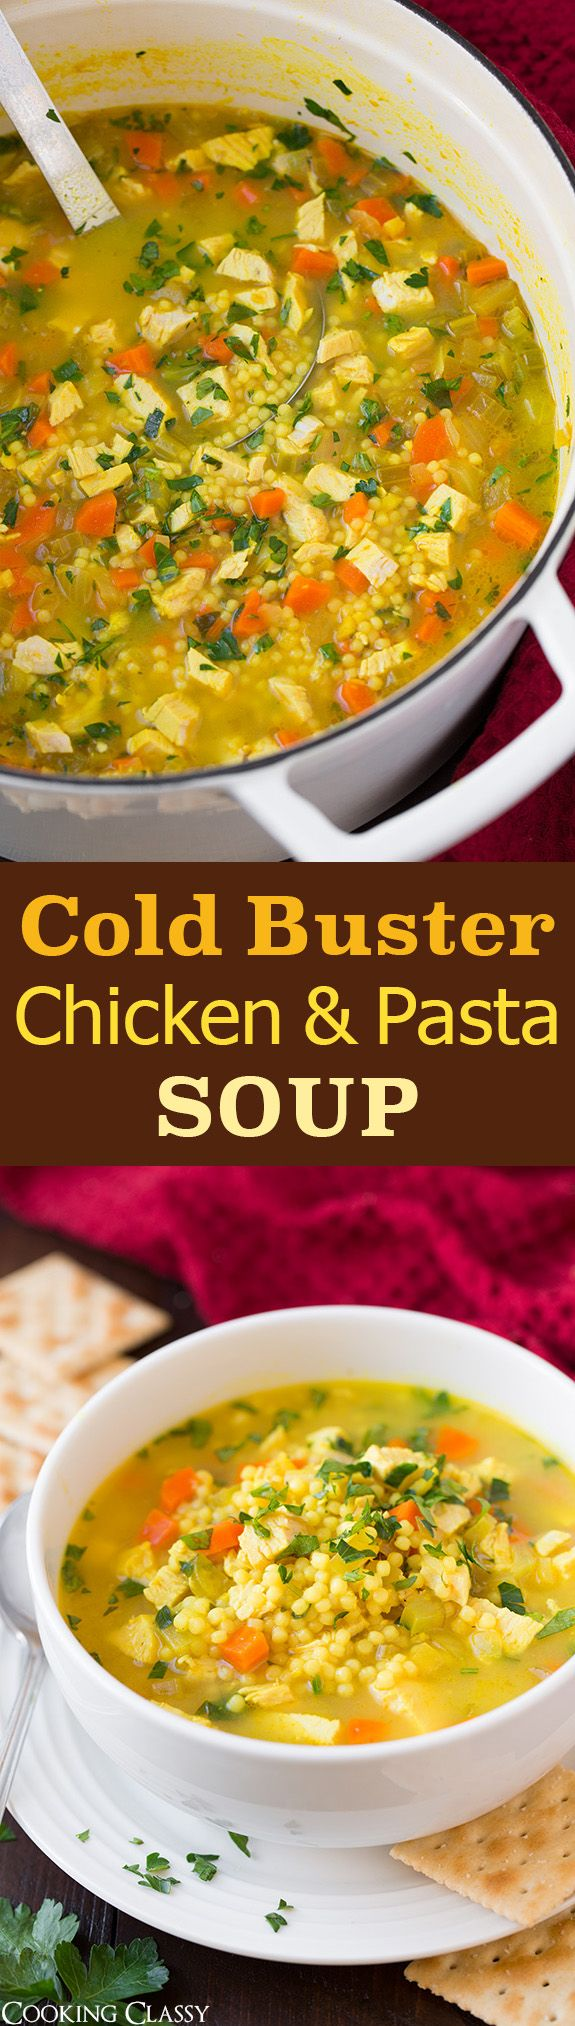 Cold Buster Chicken and Pasta Soup - definitely a recipe to keep on hand! I'm going to make it all the time though not just when I have a cold because it was SO GOOD!